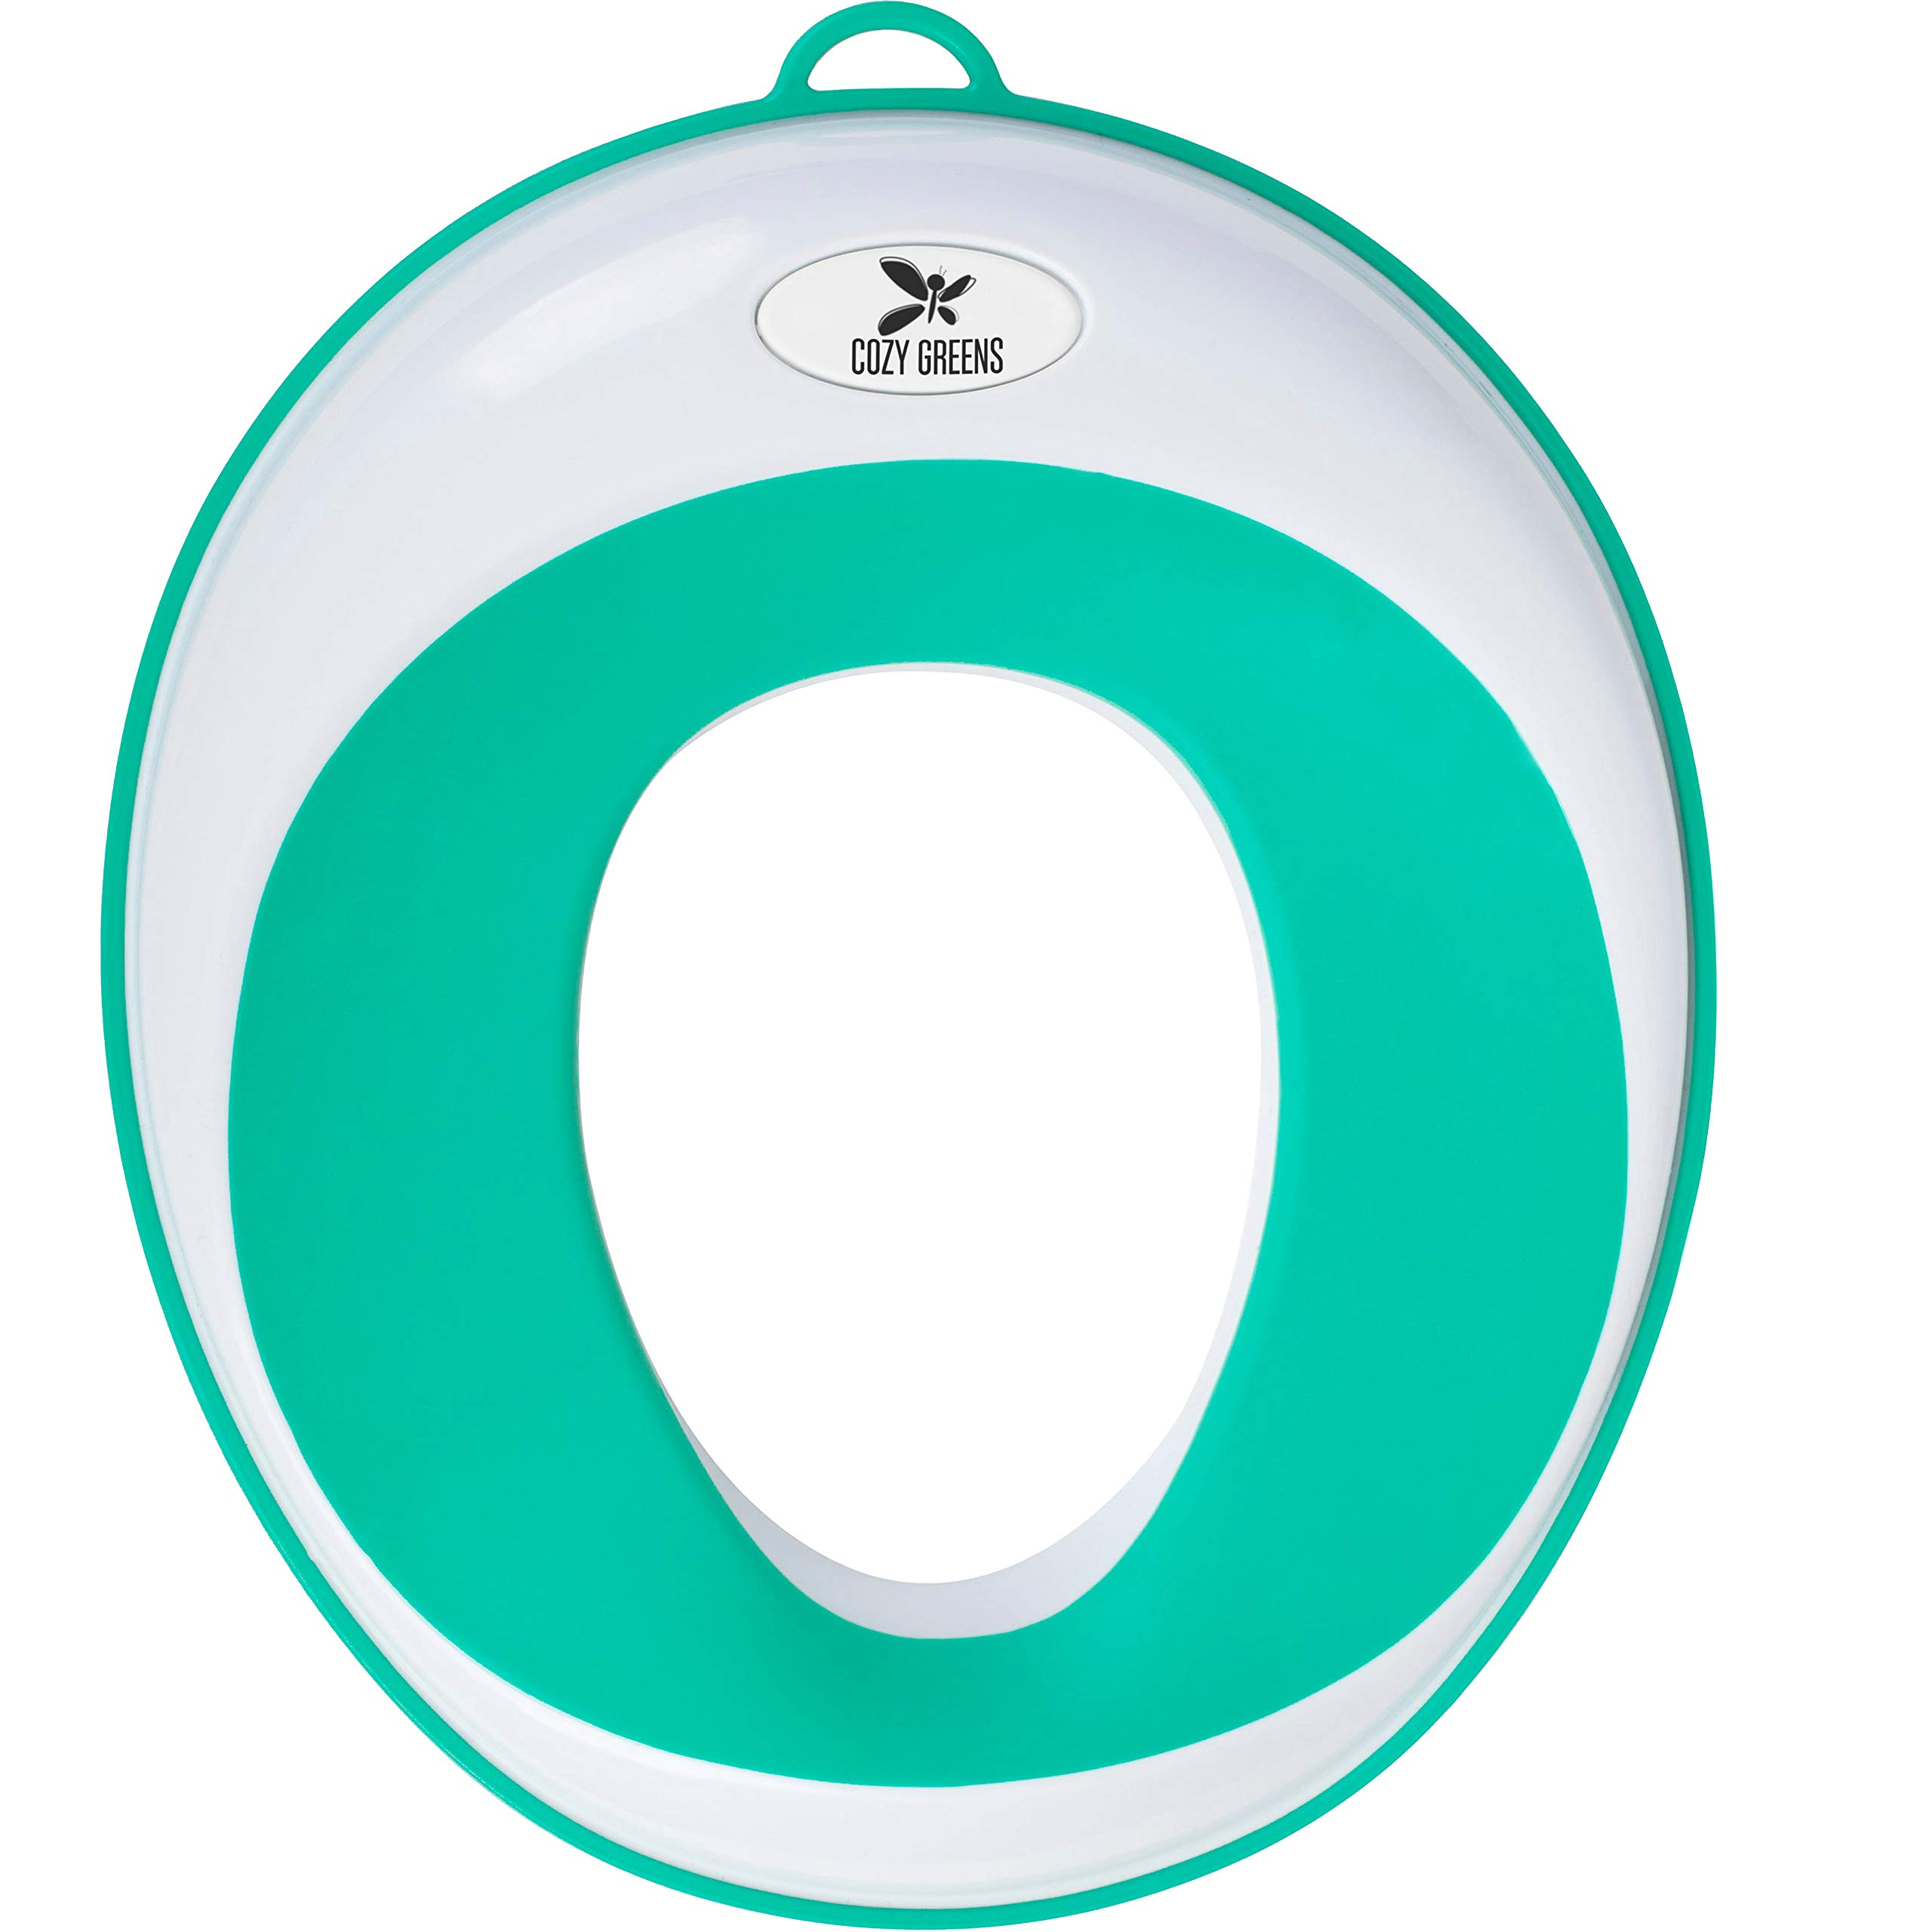 Potty Training Seat for Boys and Girls   Toddler Potty Ring   Fits Most Round and Oval Toilets   Free Folding Toilet Training Chart, Kids Toilet Training Essentials   Gift Box